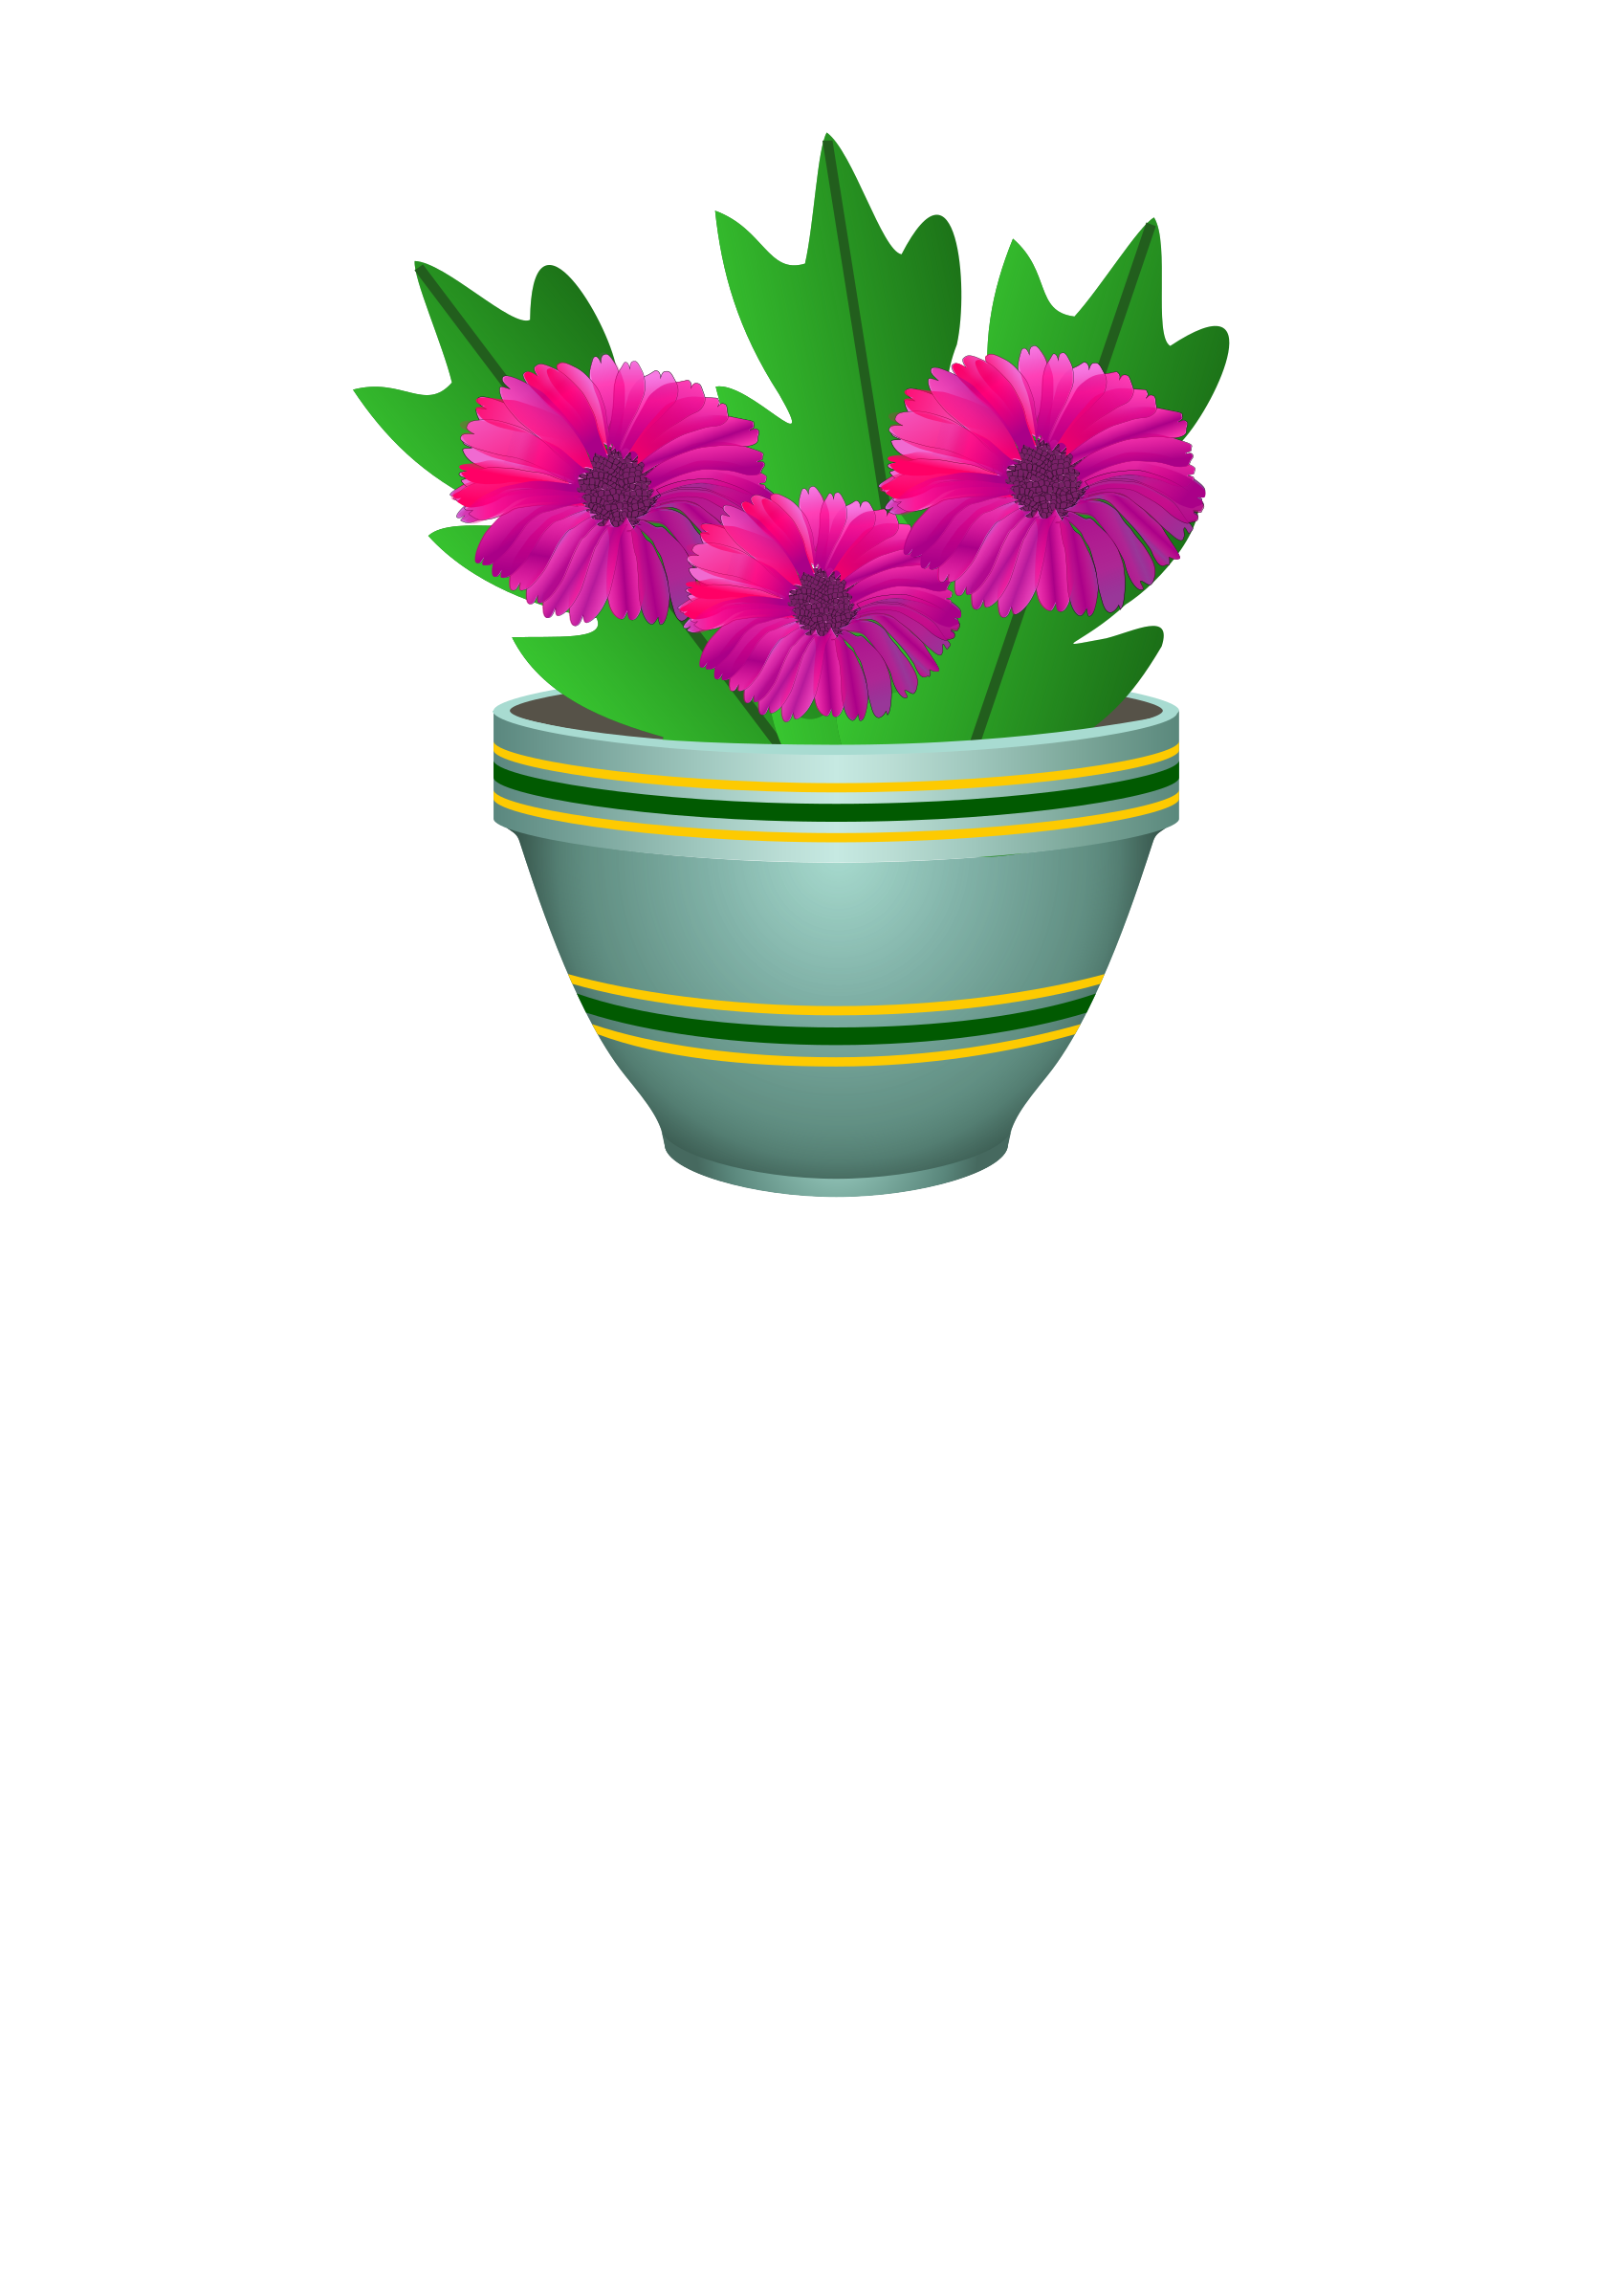 purple flower pot by cg4share